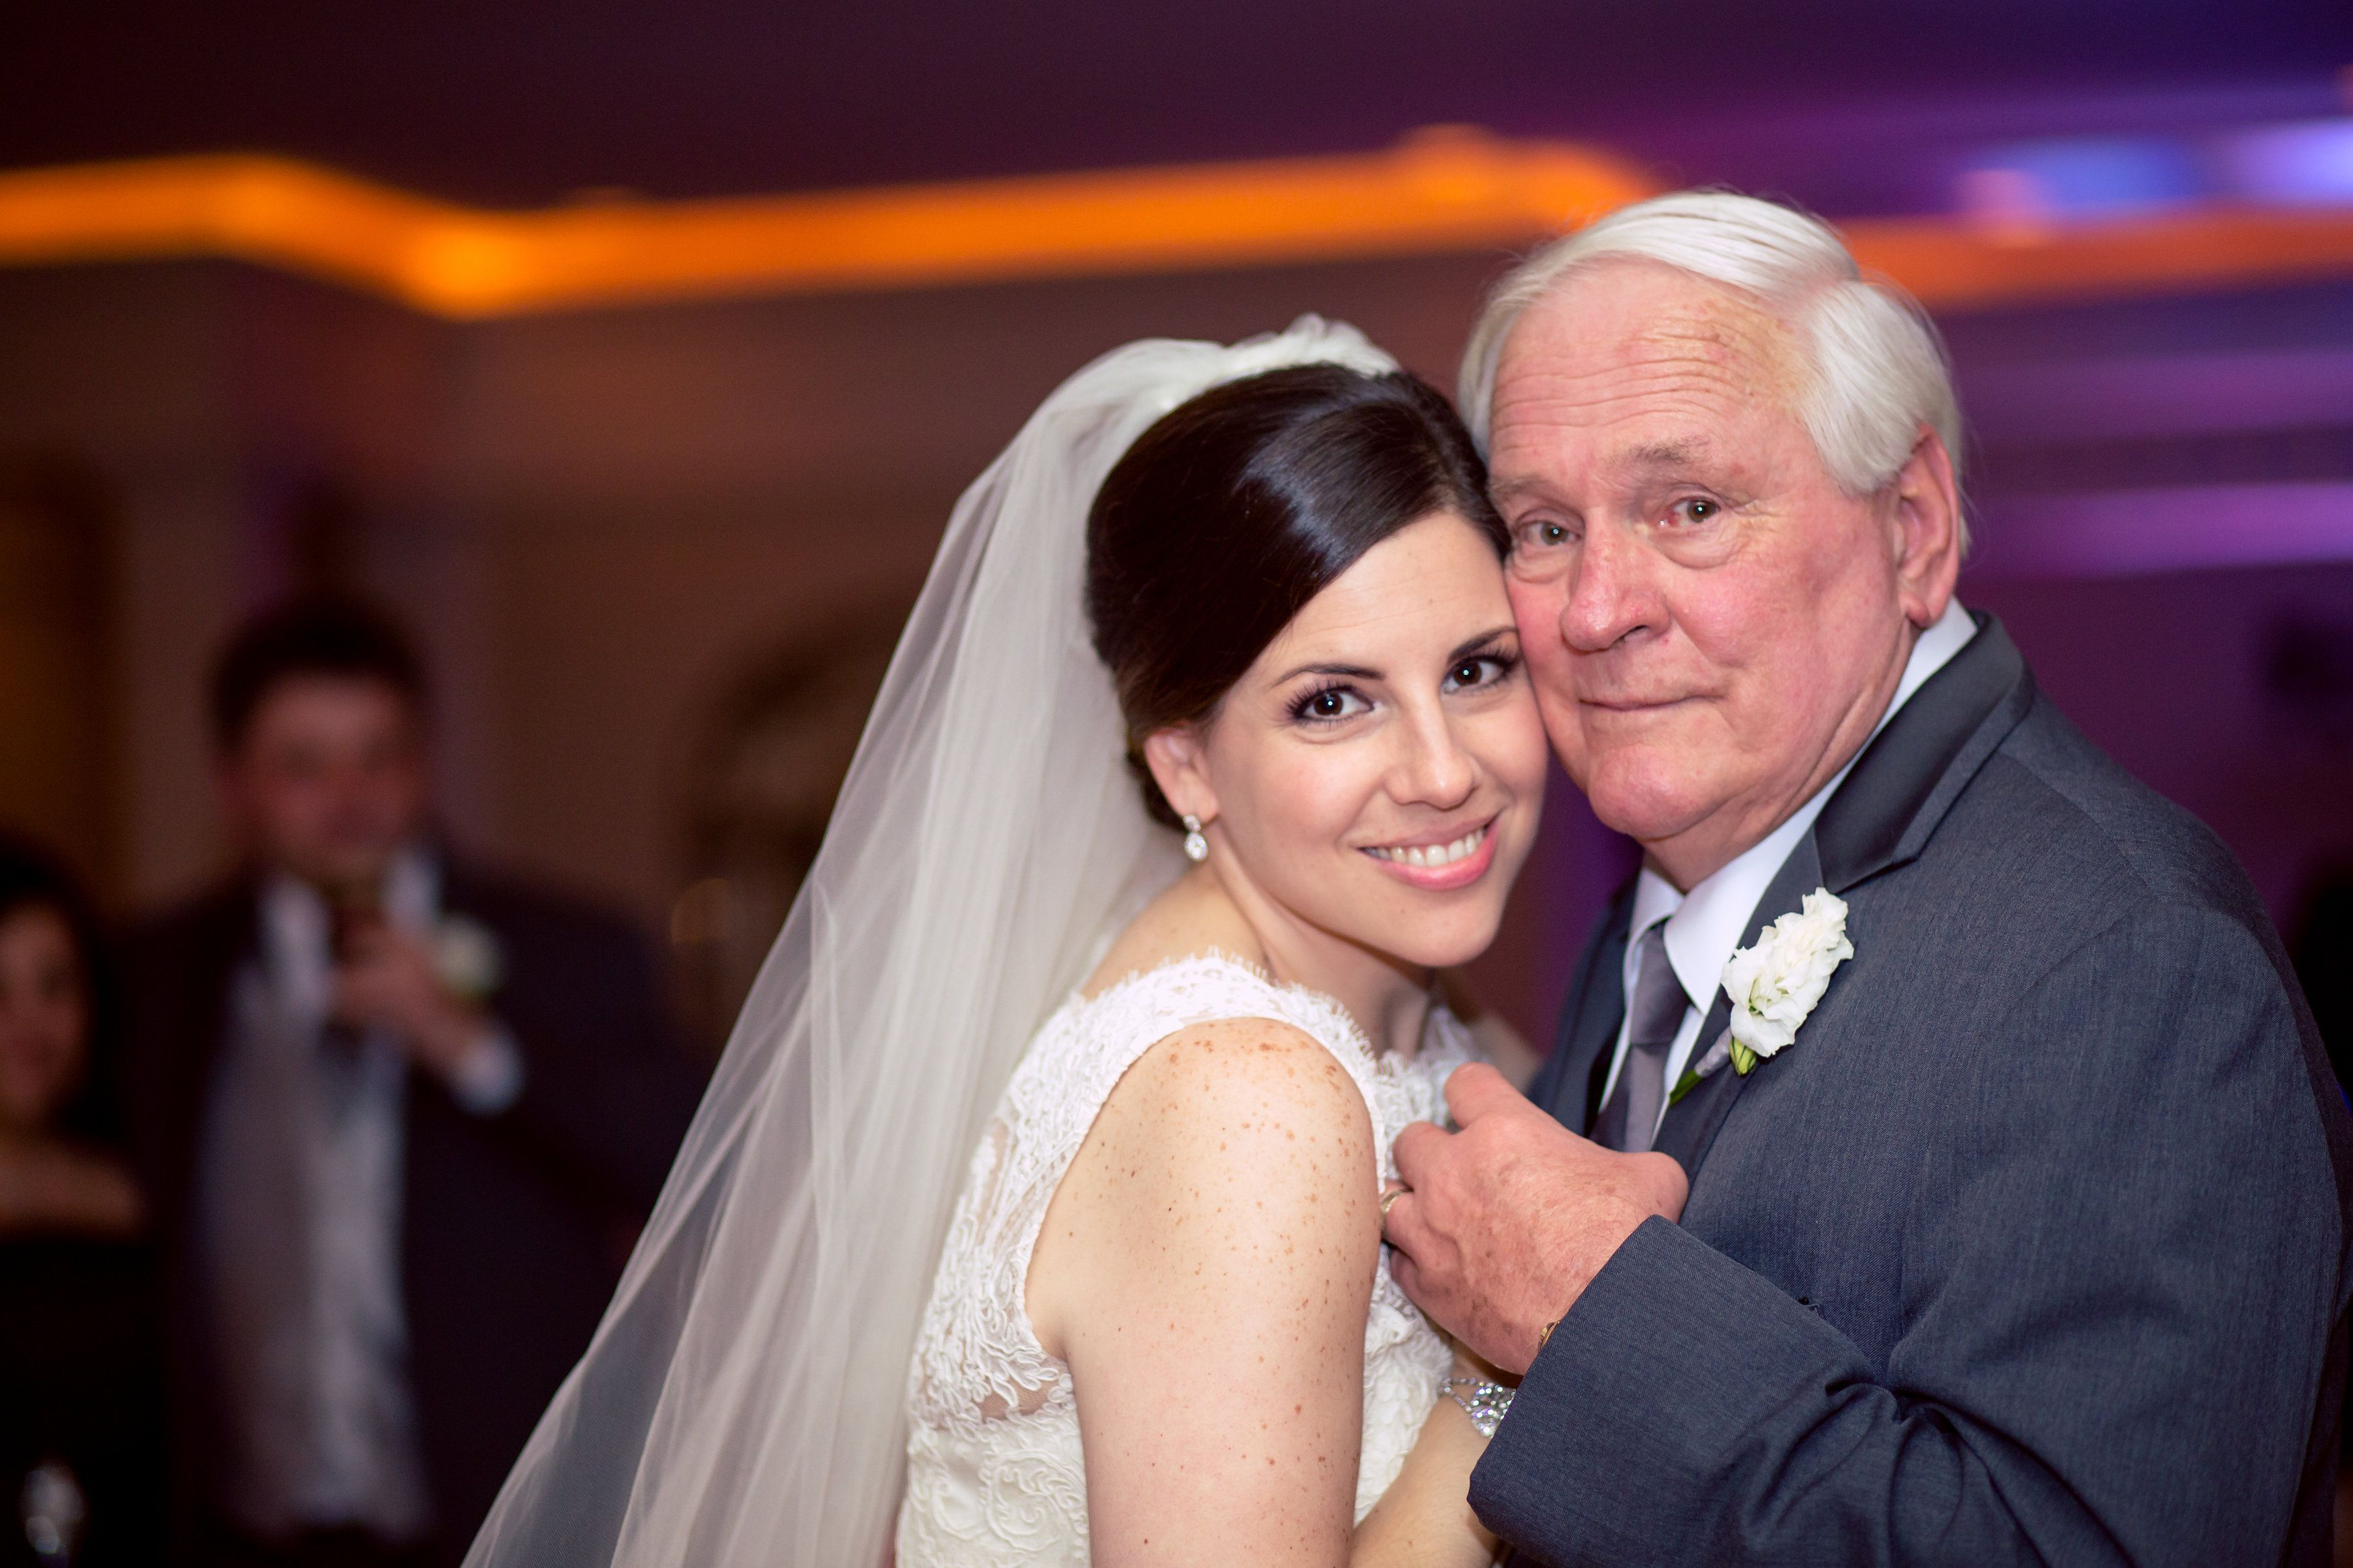 Father And Daughter Wedding Reception Dance Floor Photography